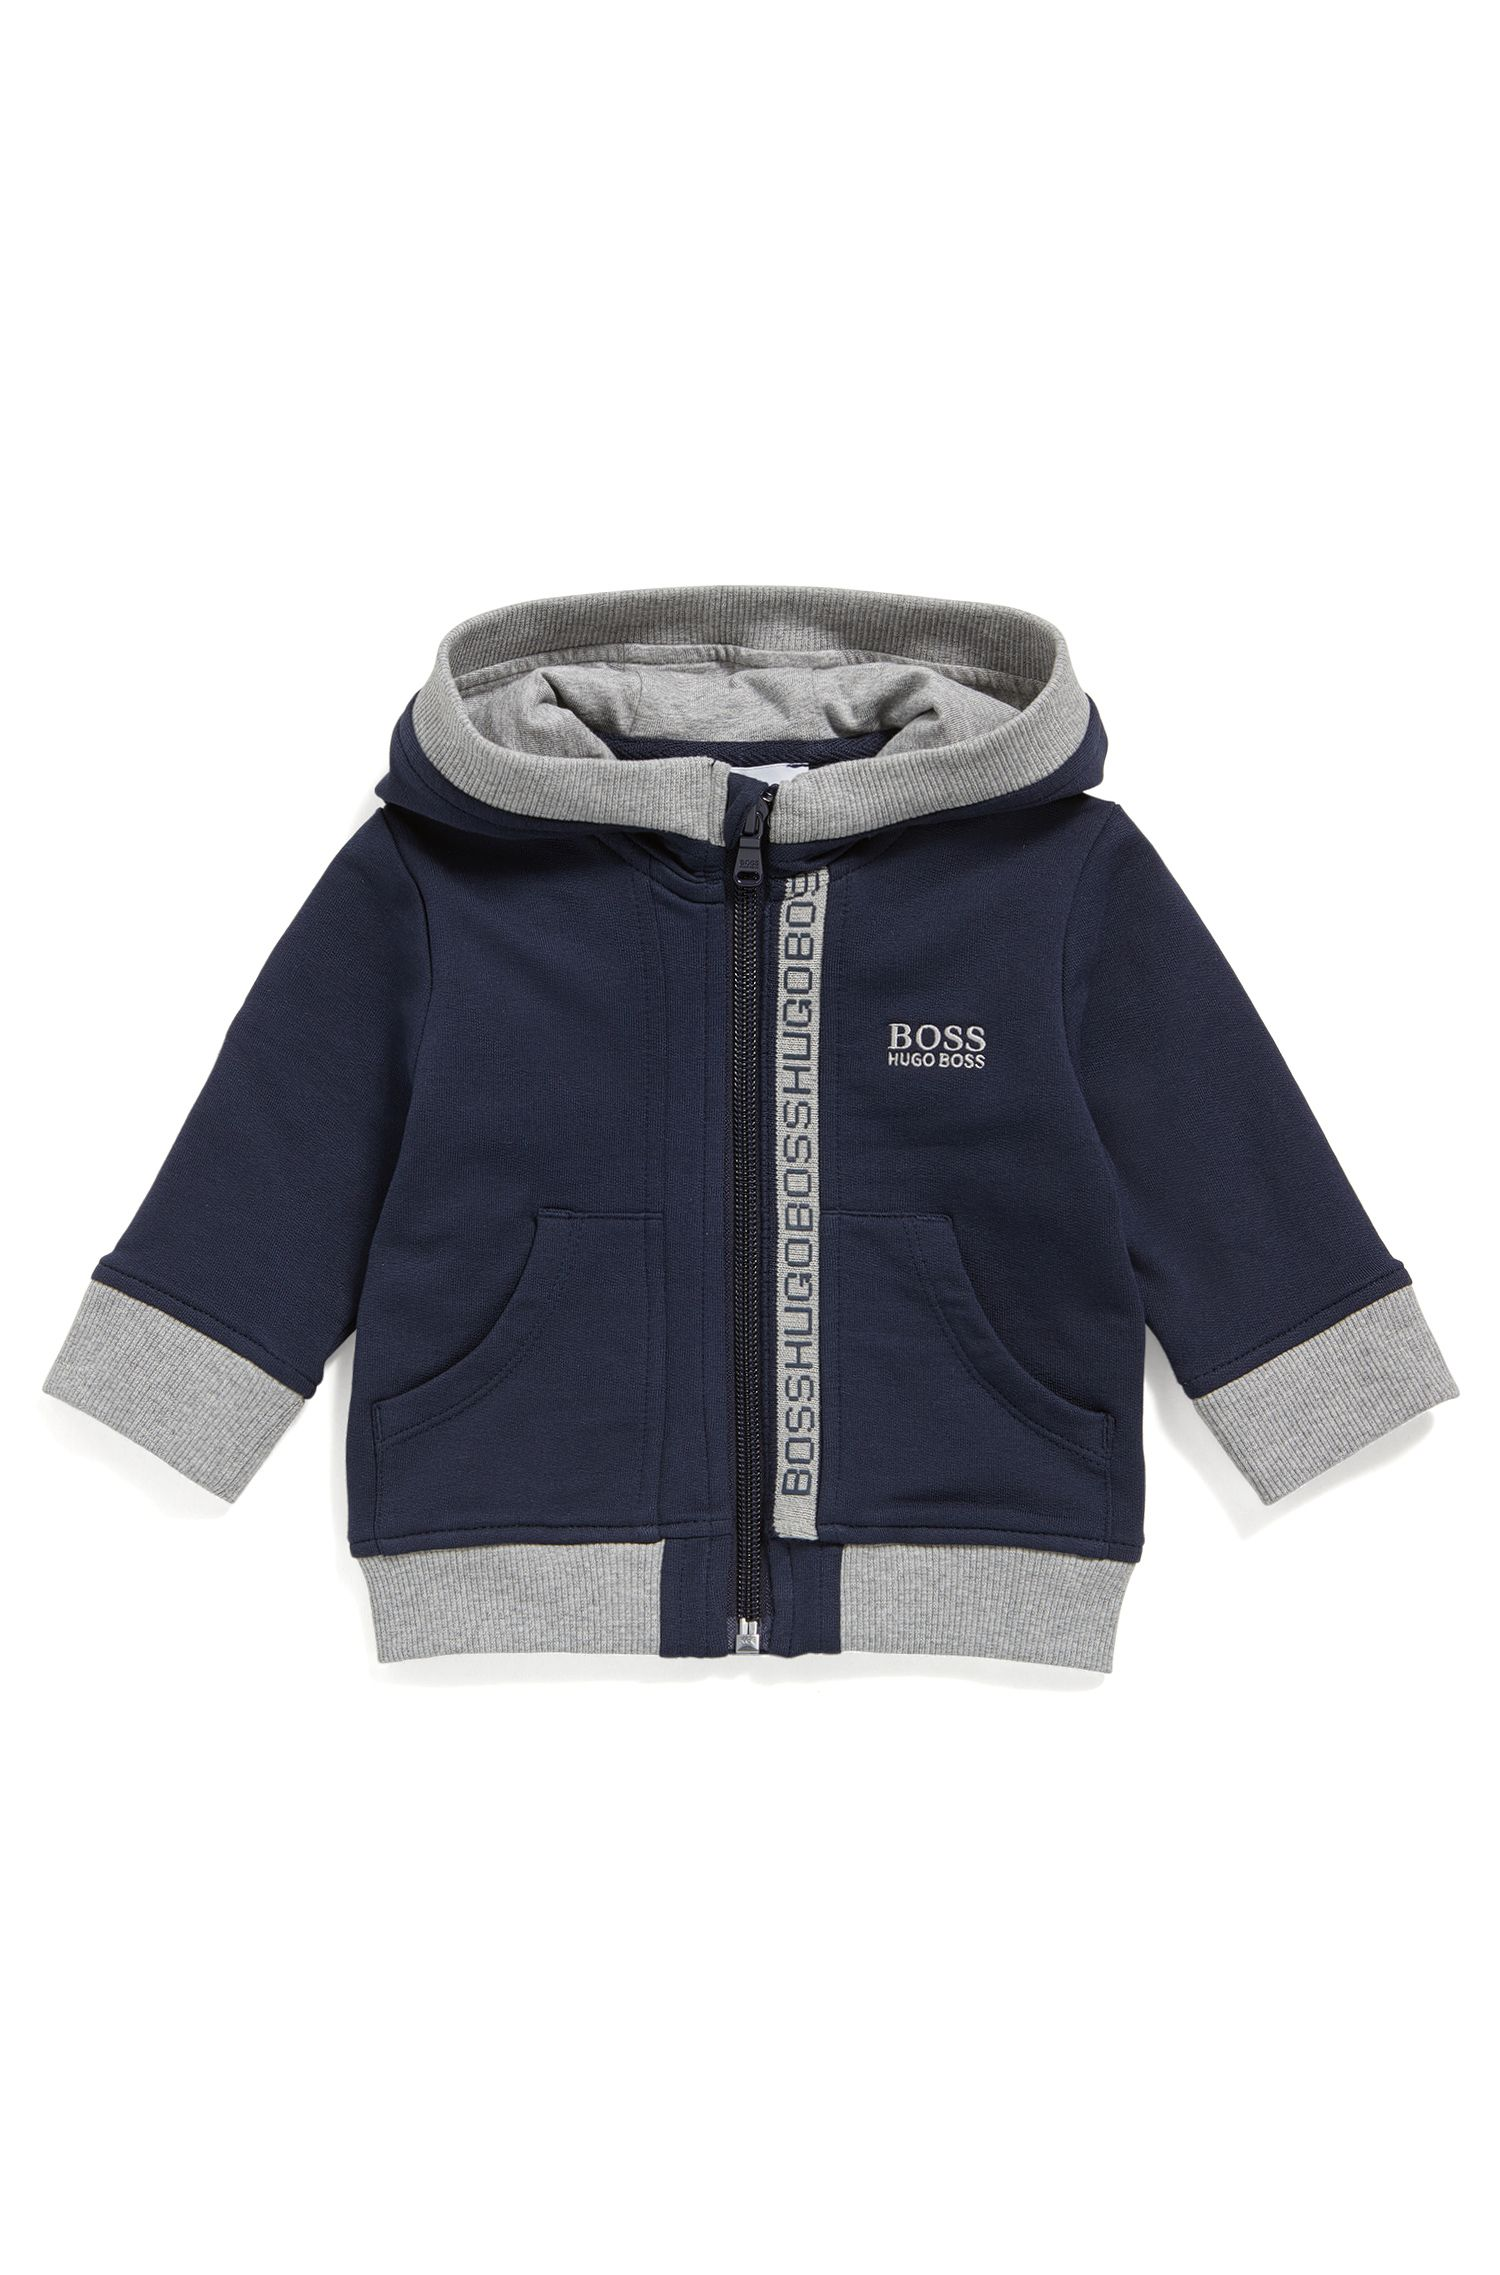 Kids' zip-through sweatshirt in cotton fleece